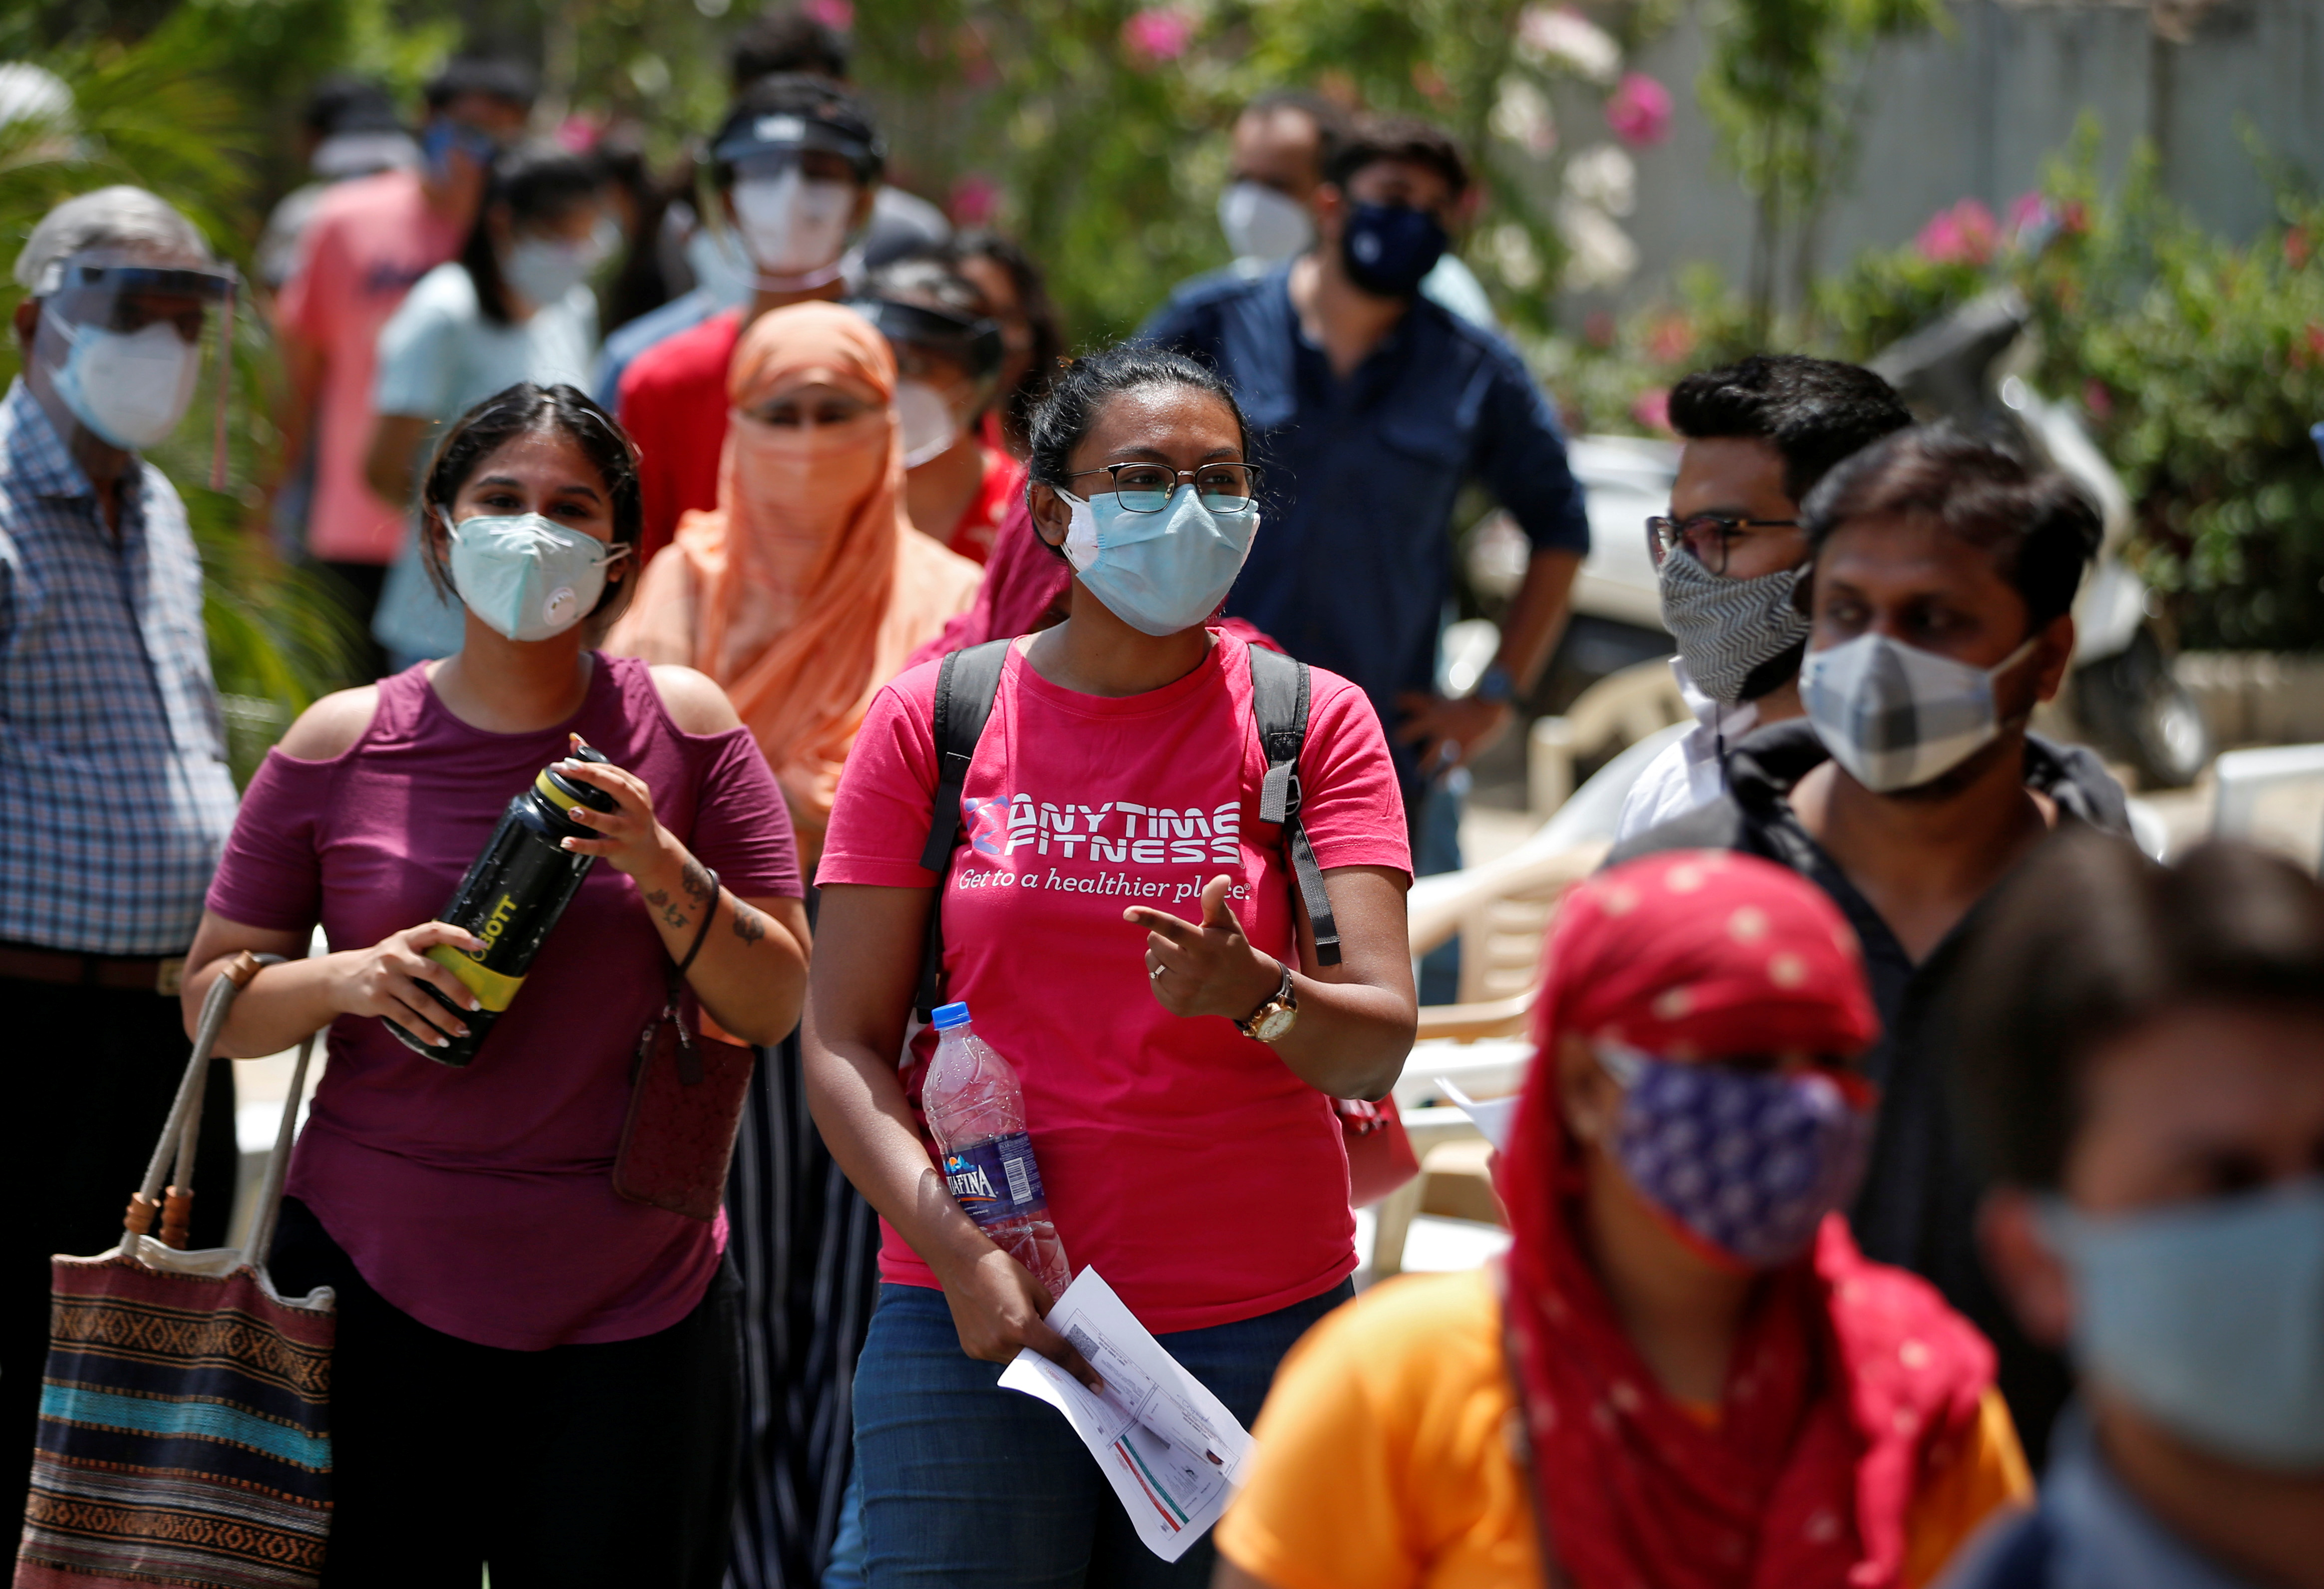 People wearing protective face masks wait to receive a dose of COVISHIELD, a coronavirus disease (COVID-19) vaccine manufactured by Serum Institute of India, outside a vaccination centre in Ahmedabad, India, May 1, 2021. REUTERS/Amit Dave